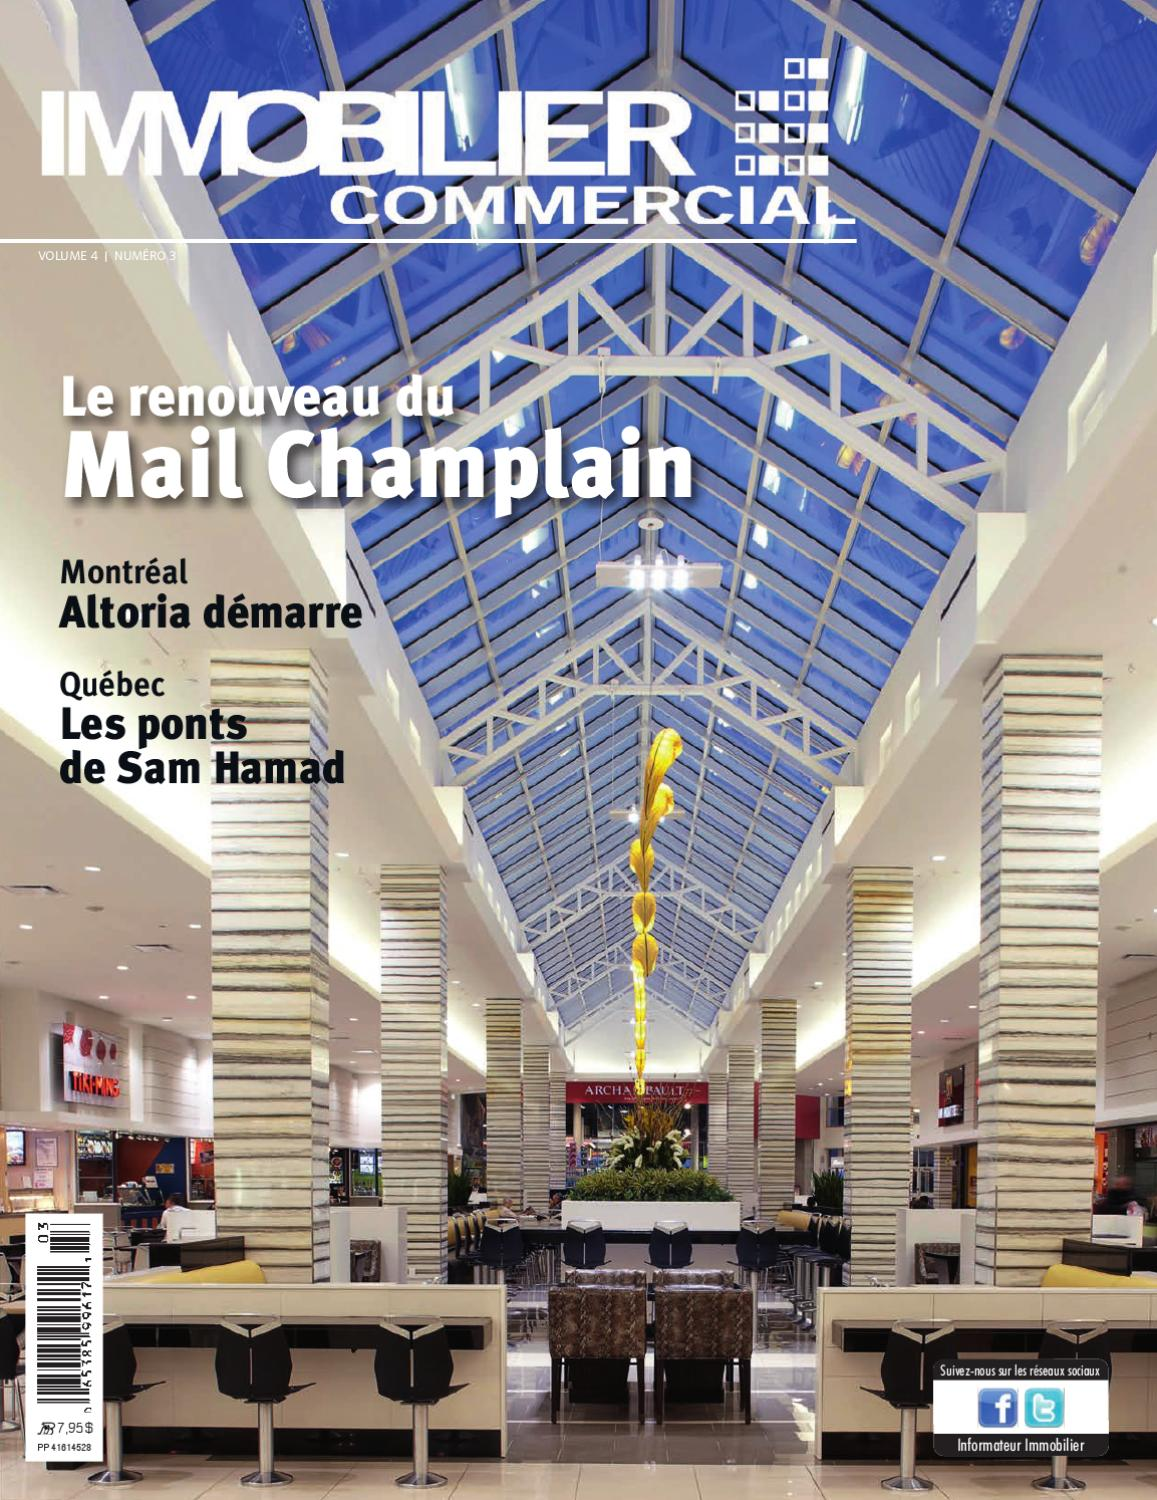 Magazine Immobilier Commercial Vol 4 No 3 By Jbc Média Inc Issuu